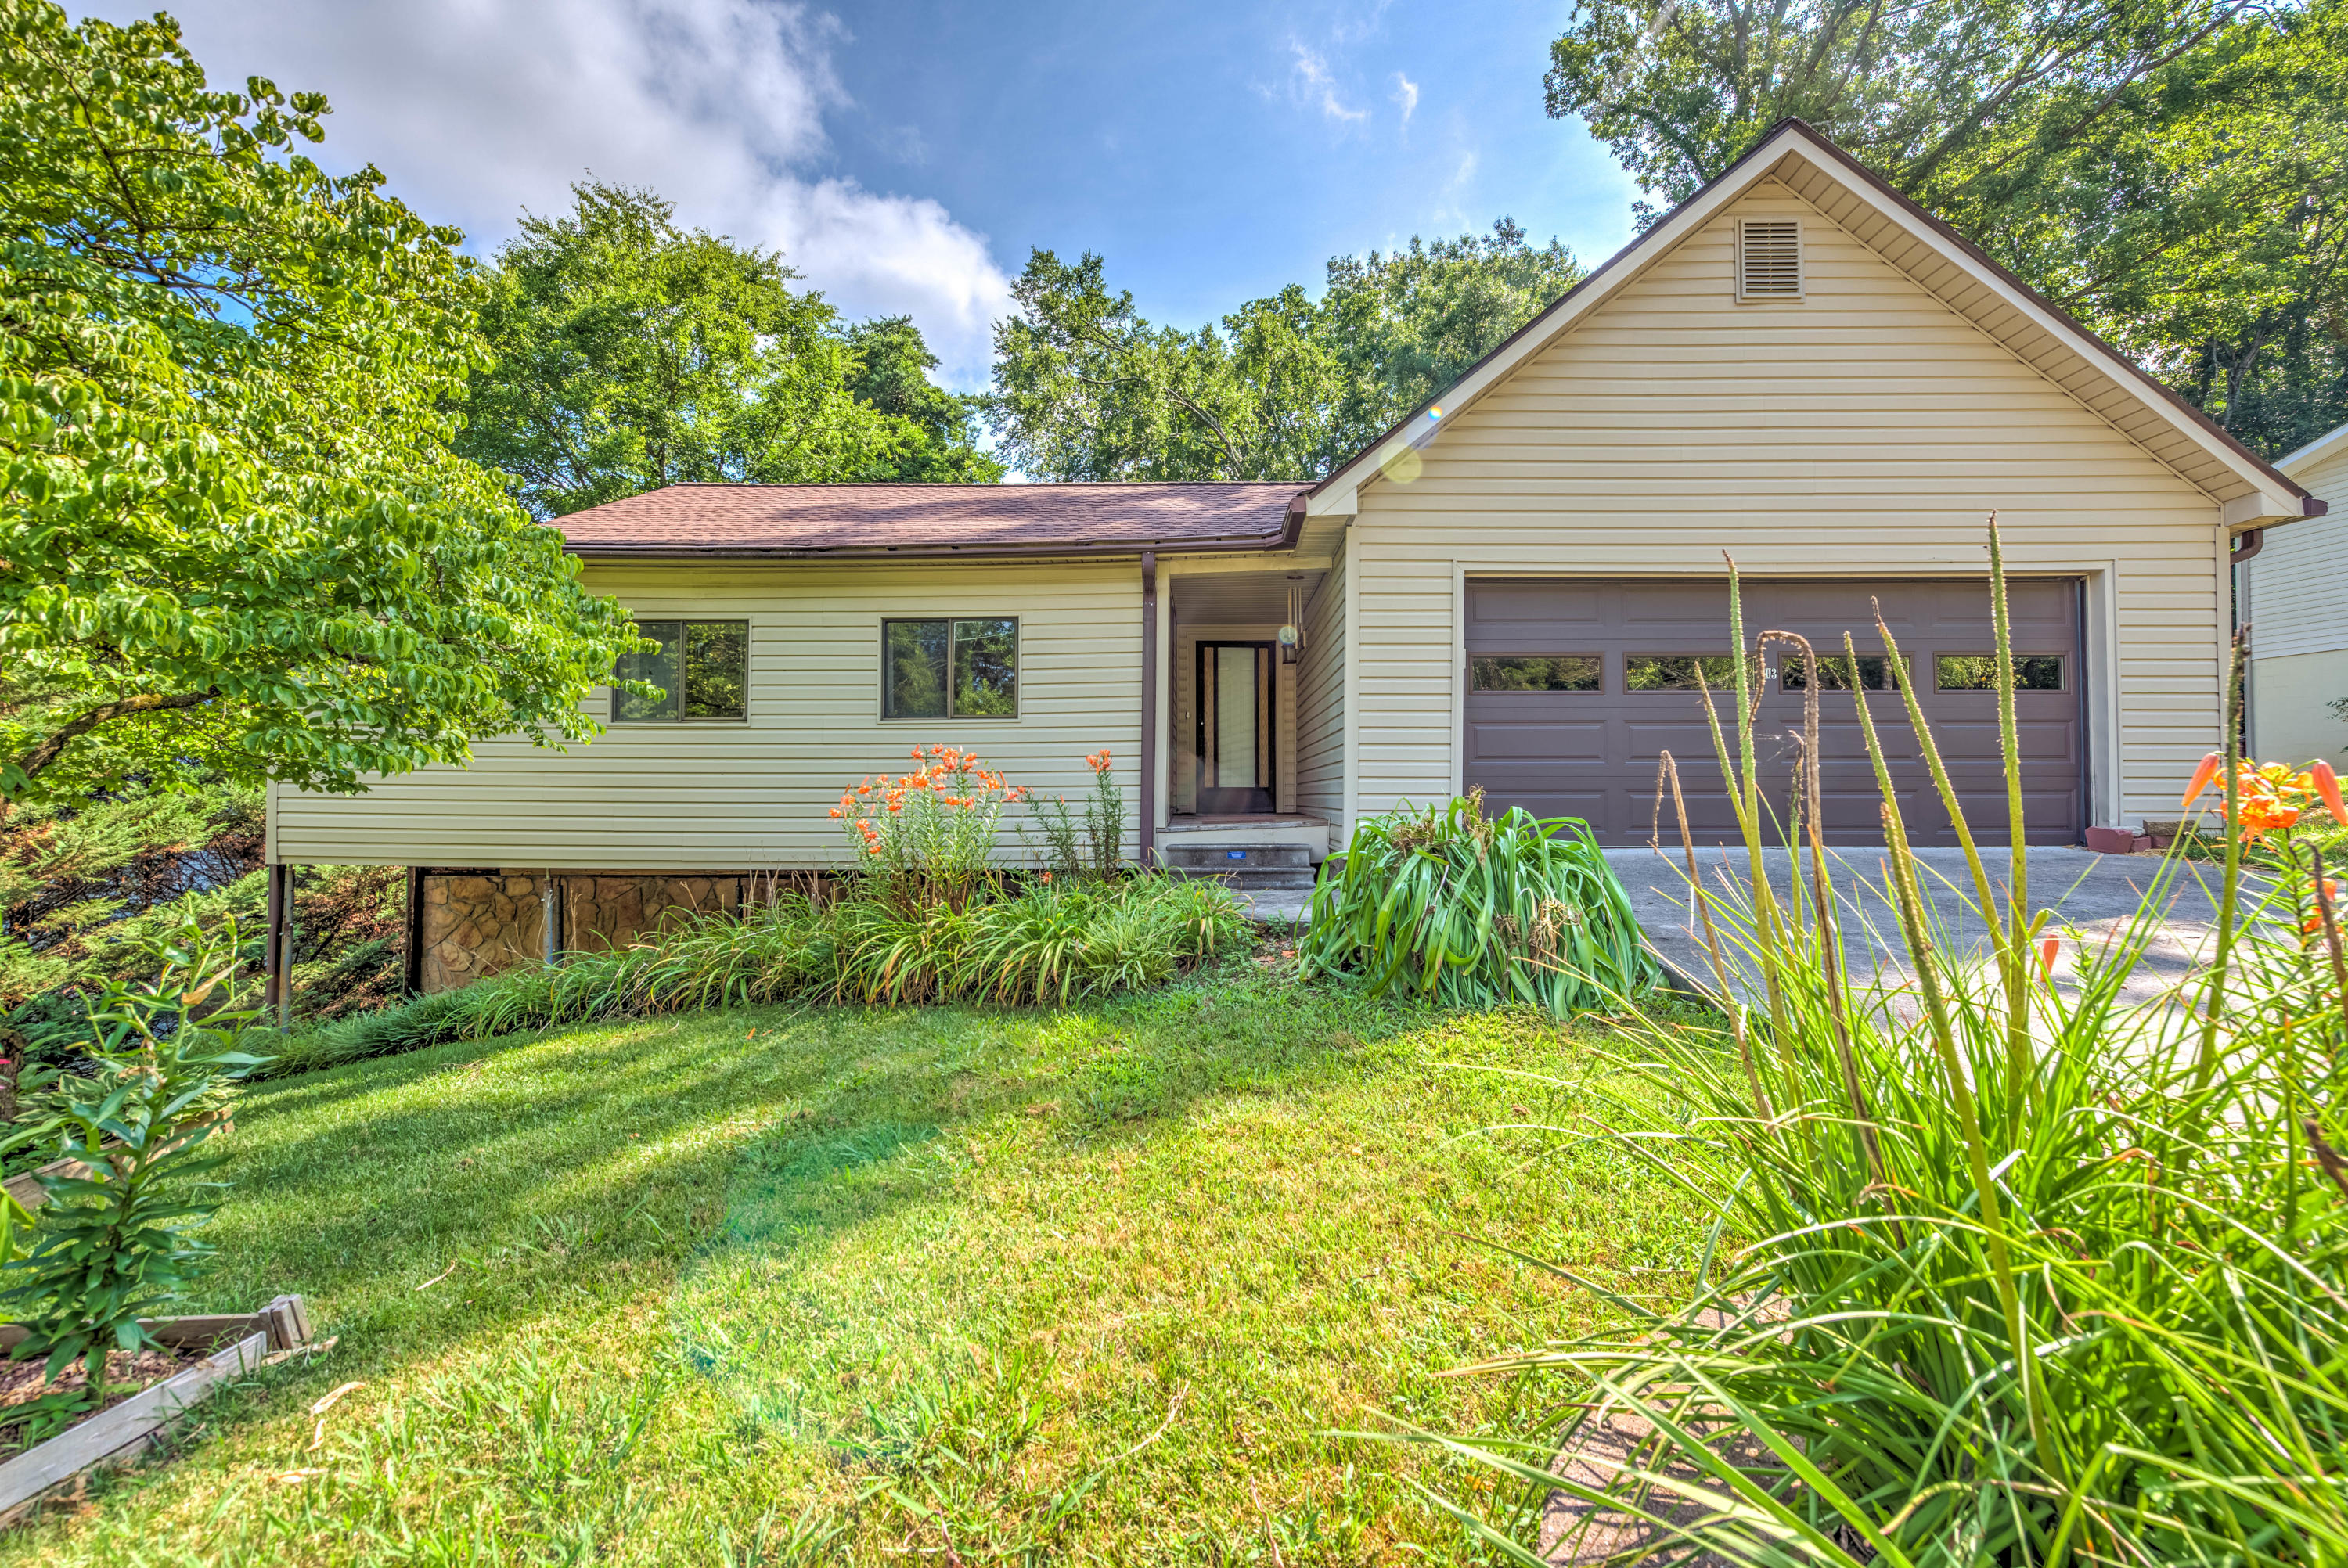 20190708235143349776000000-o Listings anderson county homes for sale